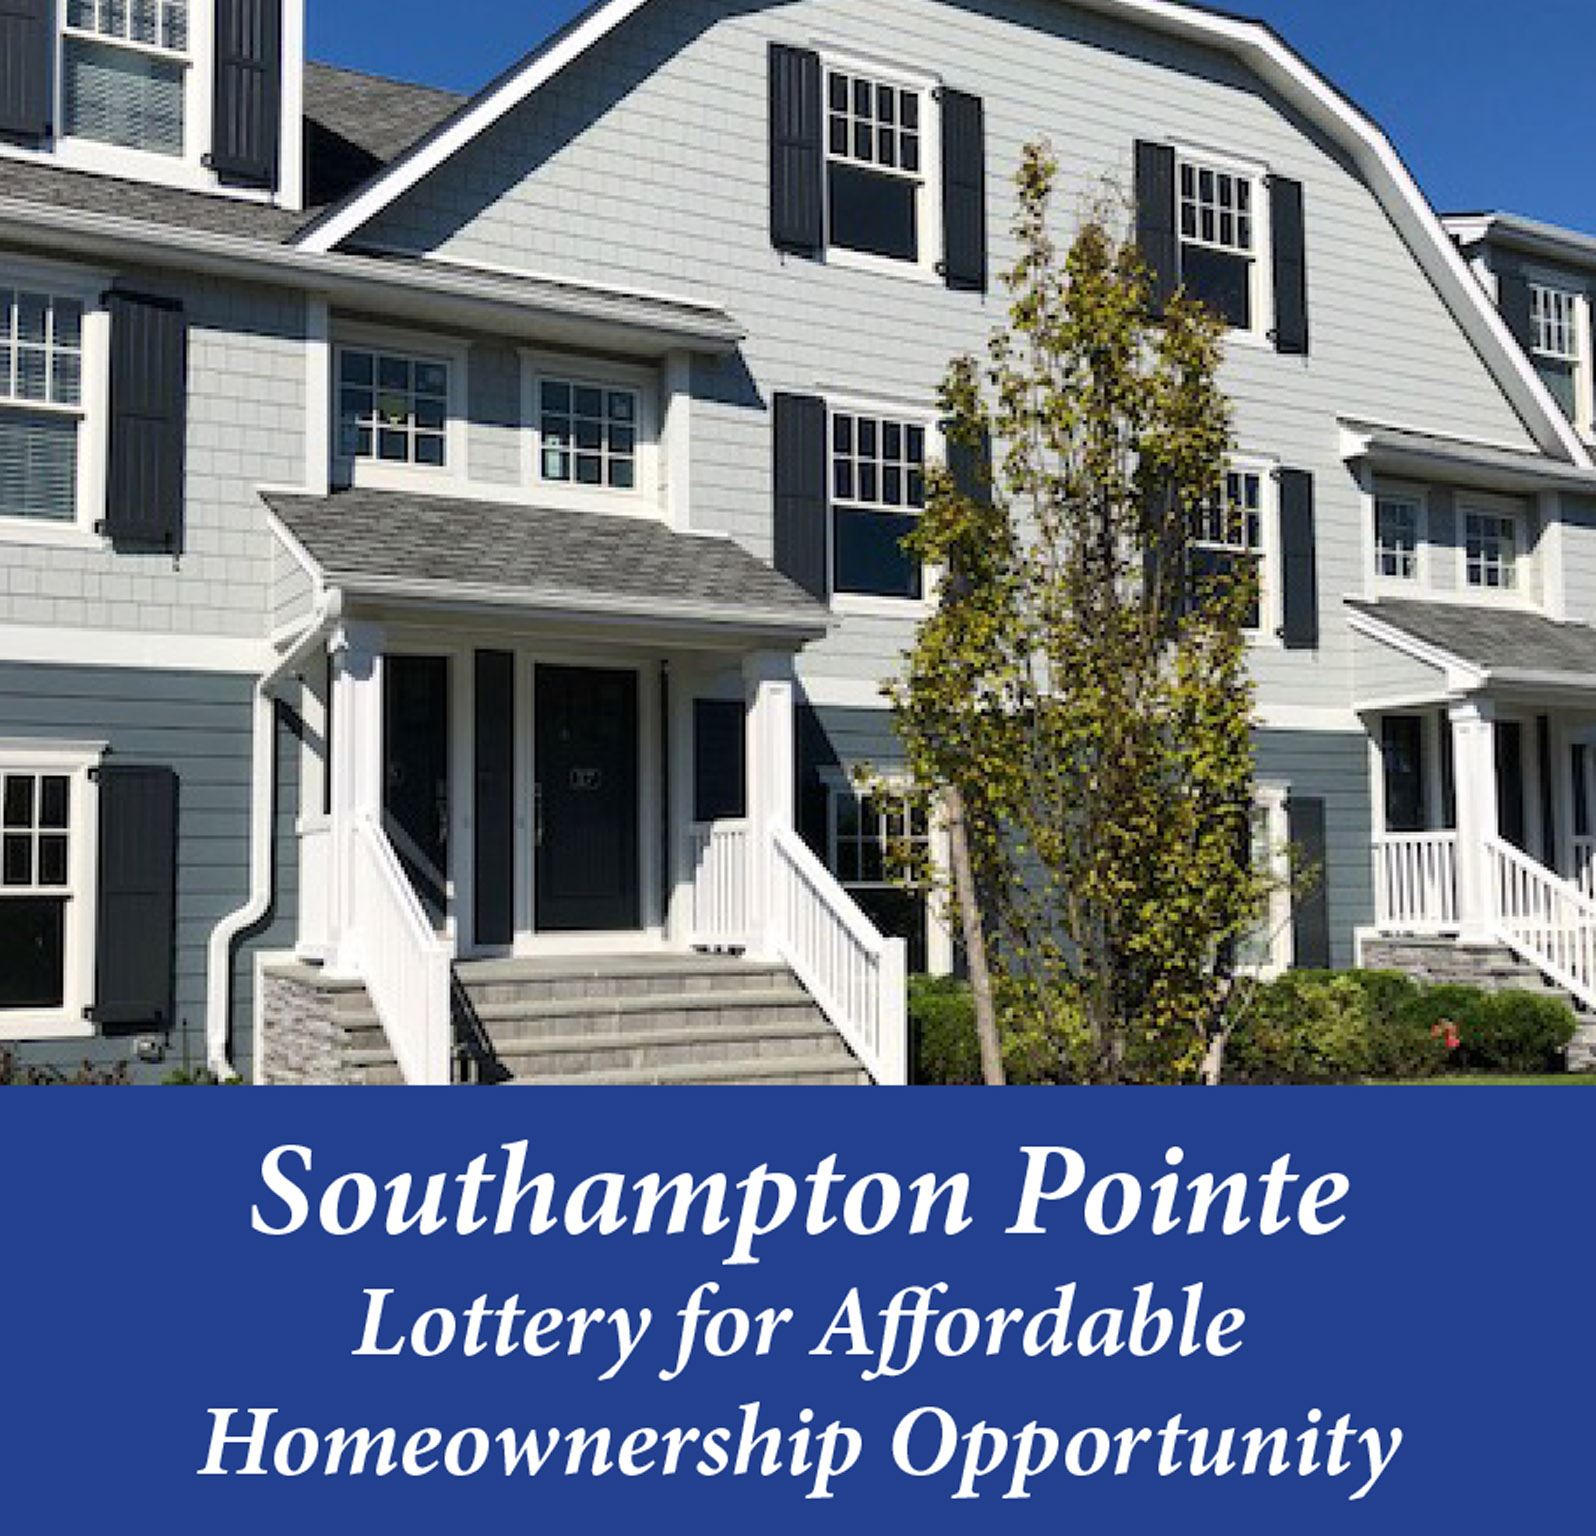 Southampton Pointe Housing Lottery